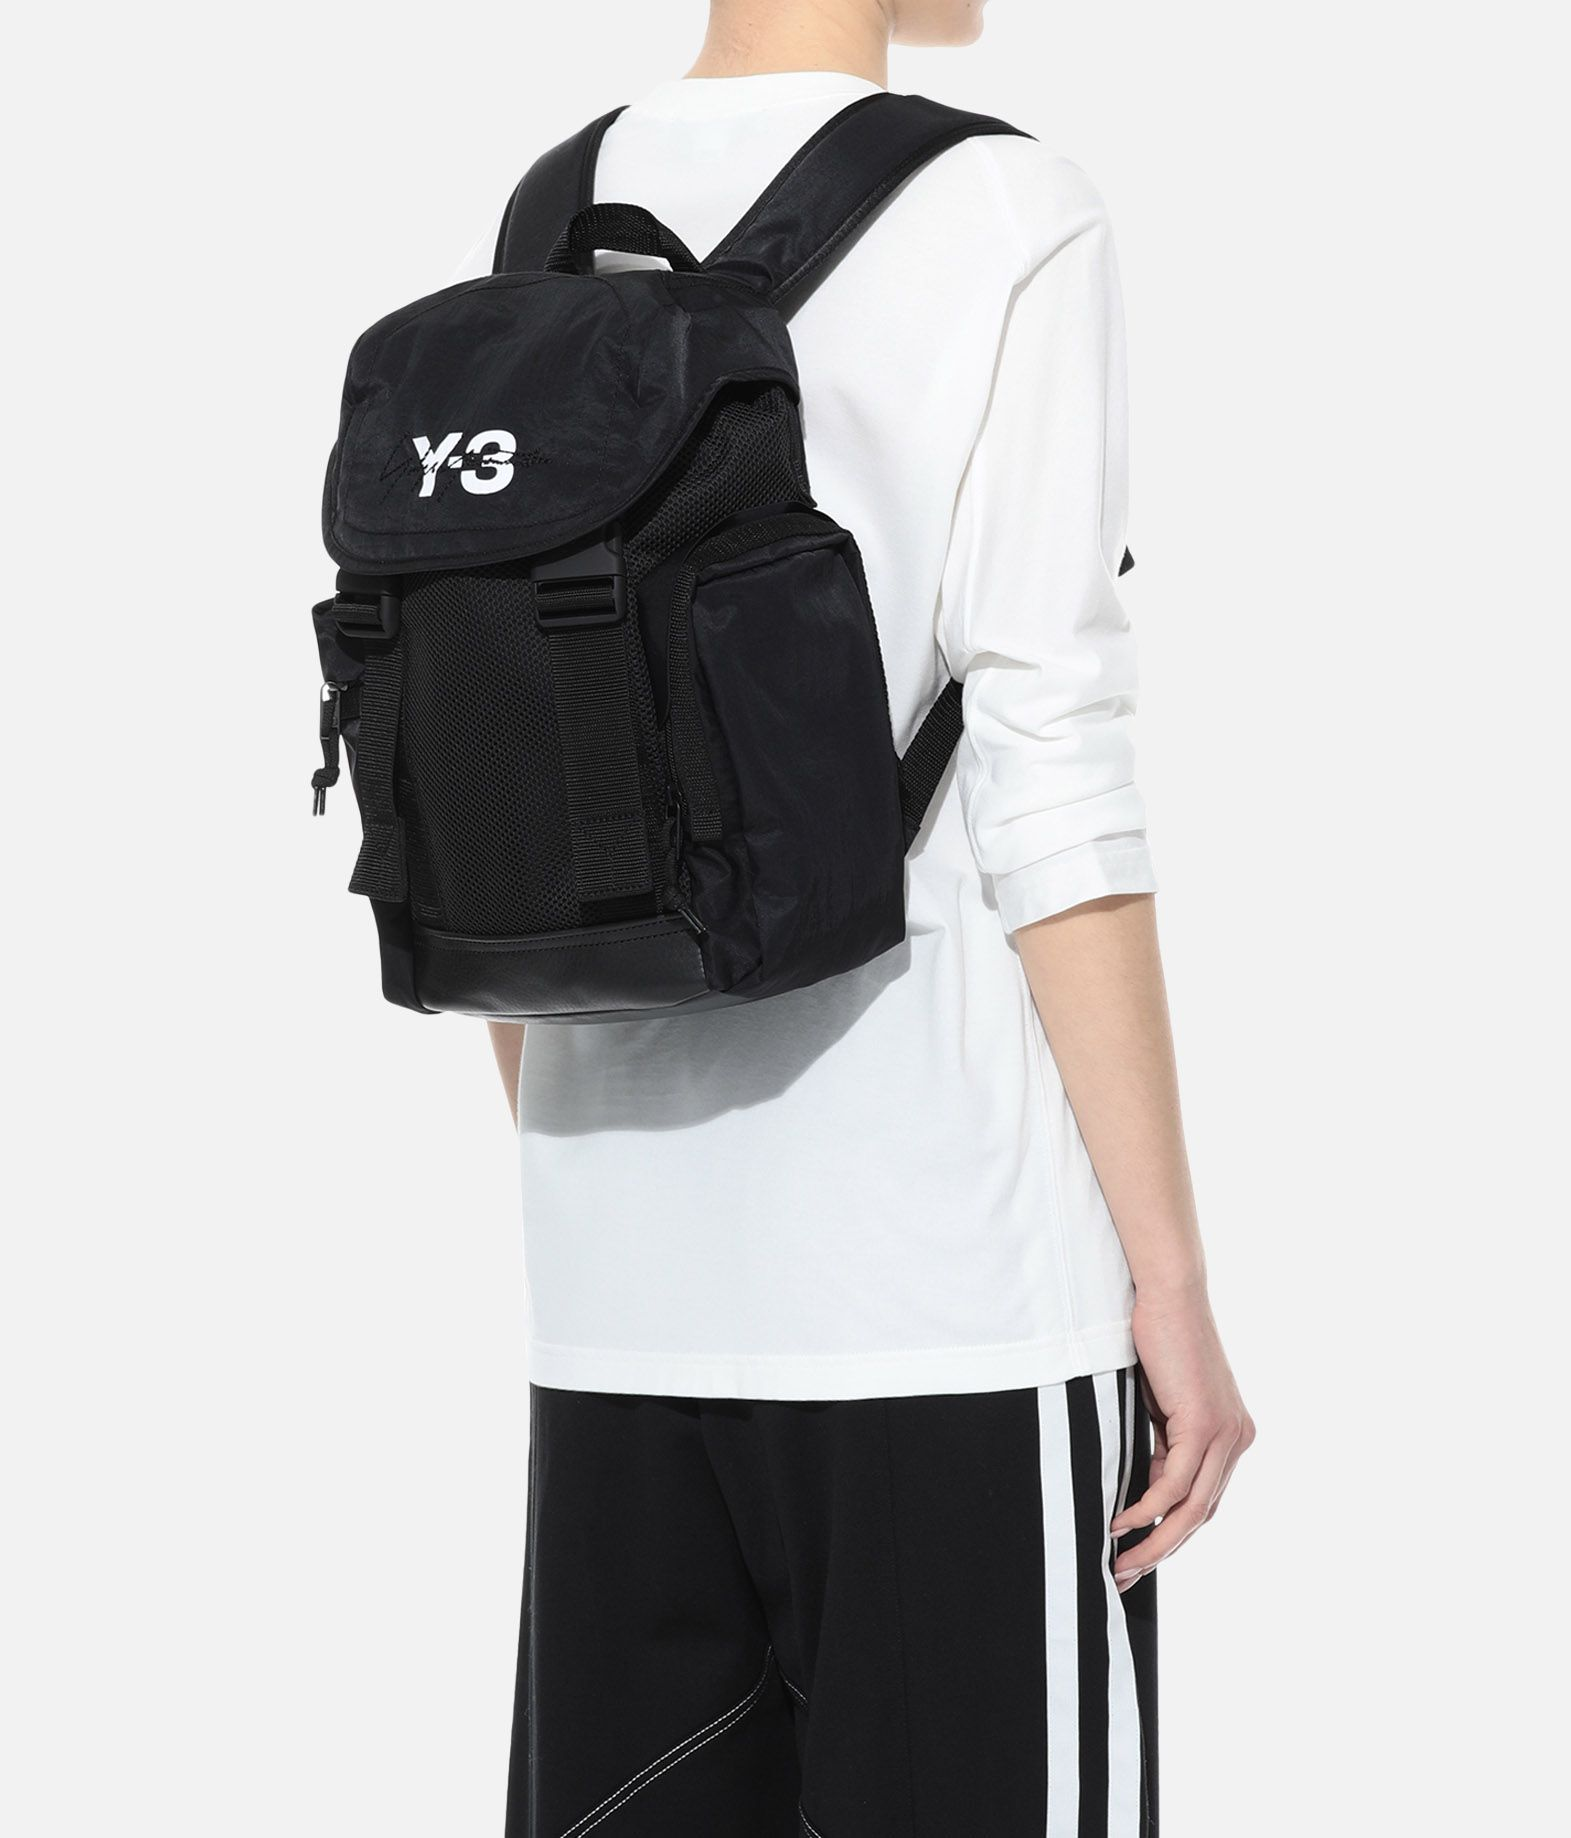 Y-3 Y-3 XS Mobility Bag Rucksack E a